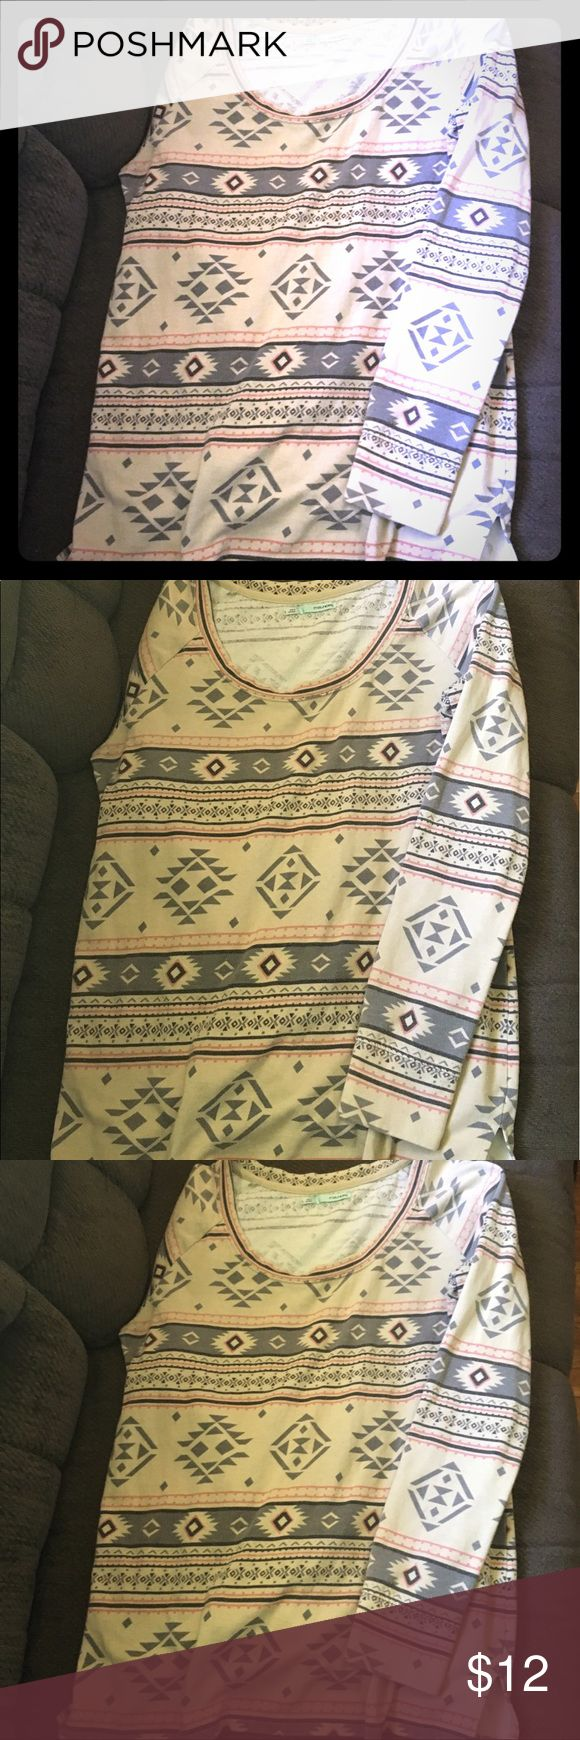 Women's Aztec Print Sweater Comfort and style! Women's large Aztec print sweater from Maurice's. Gently worn. Maurices Tops Sweatshirts & Hoodies